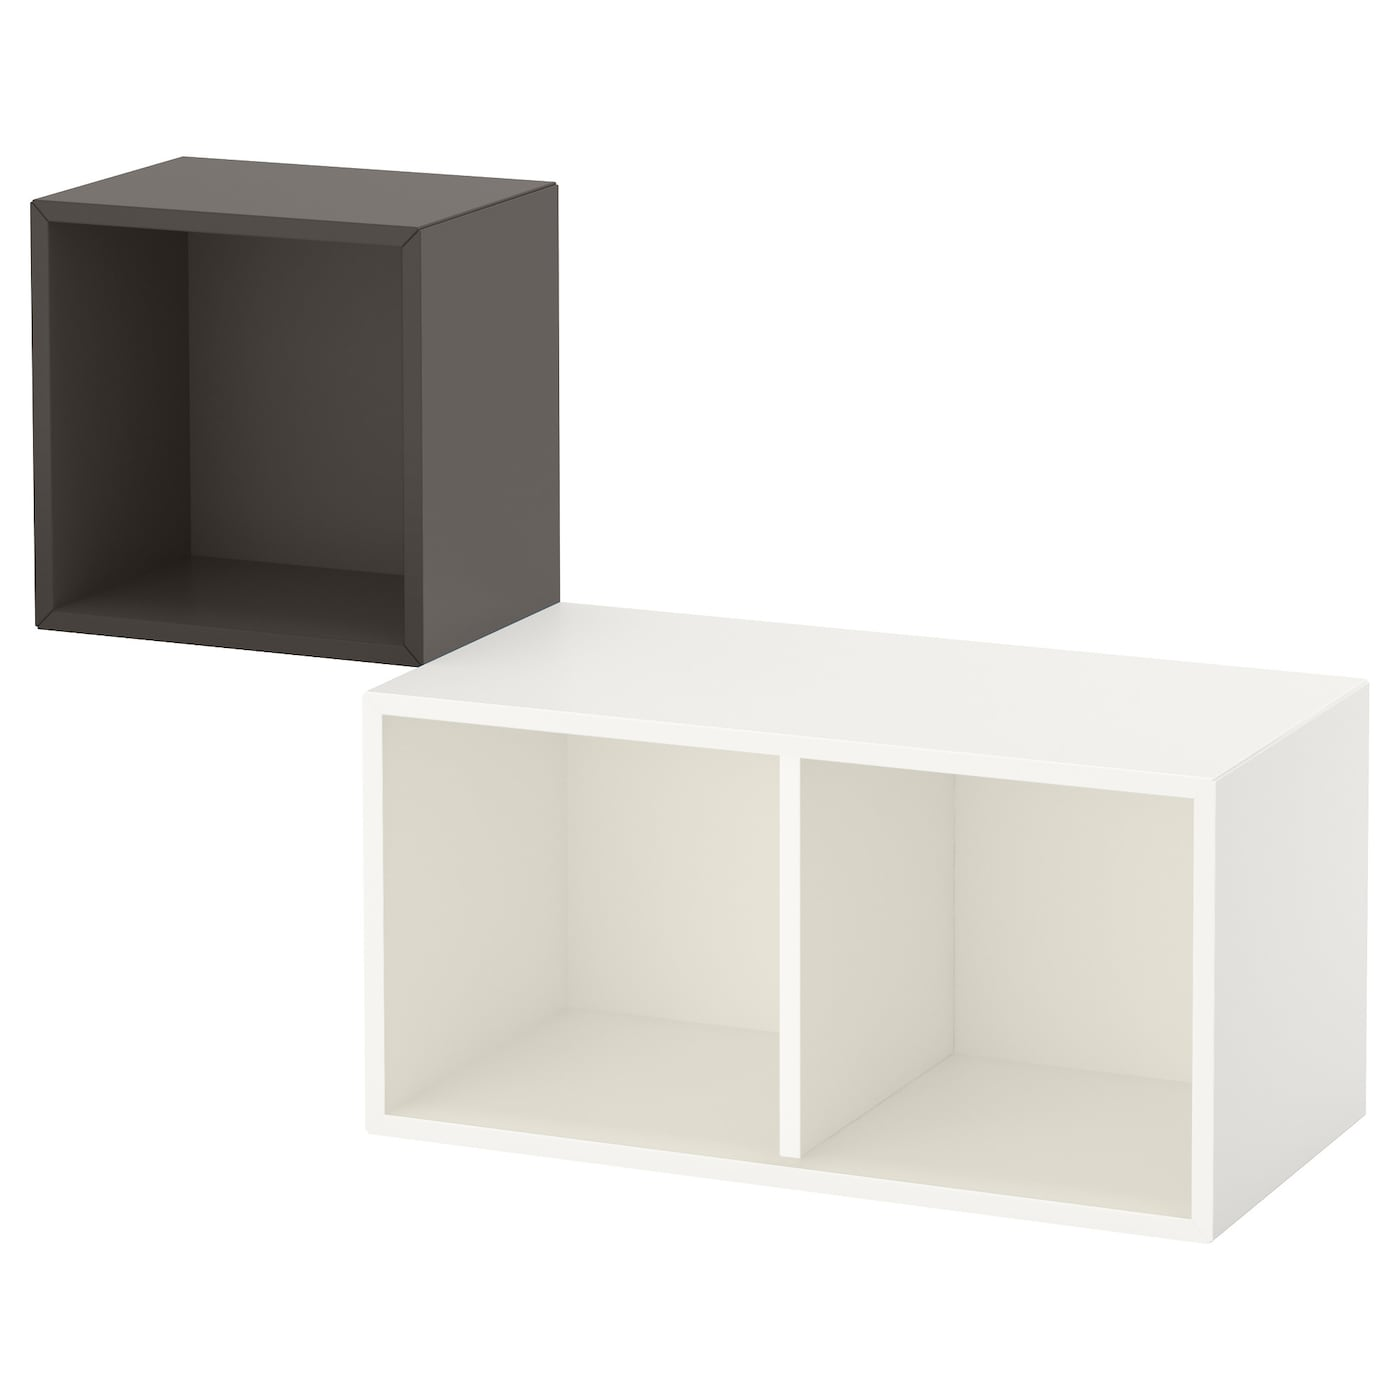 eket kastencombinatie voor wandmontage donkergrijs wit. Black Bedroom Furniture Sets. Home Design Ideas